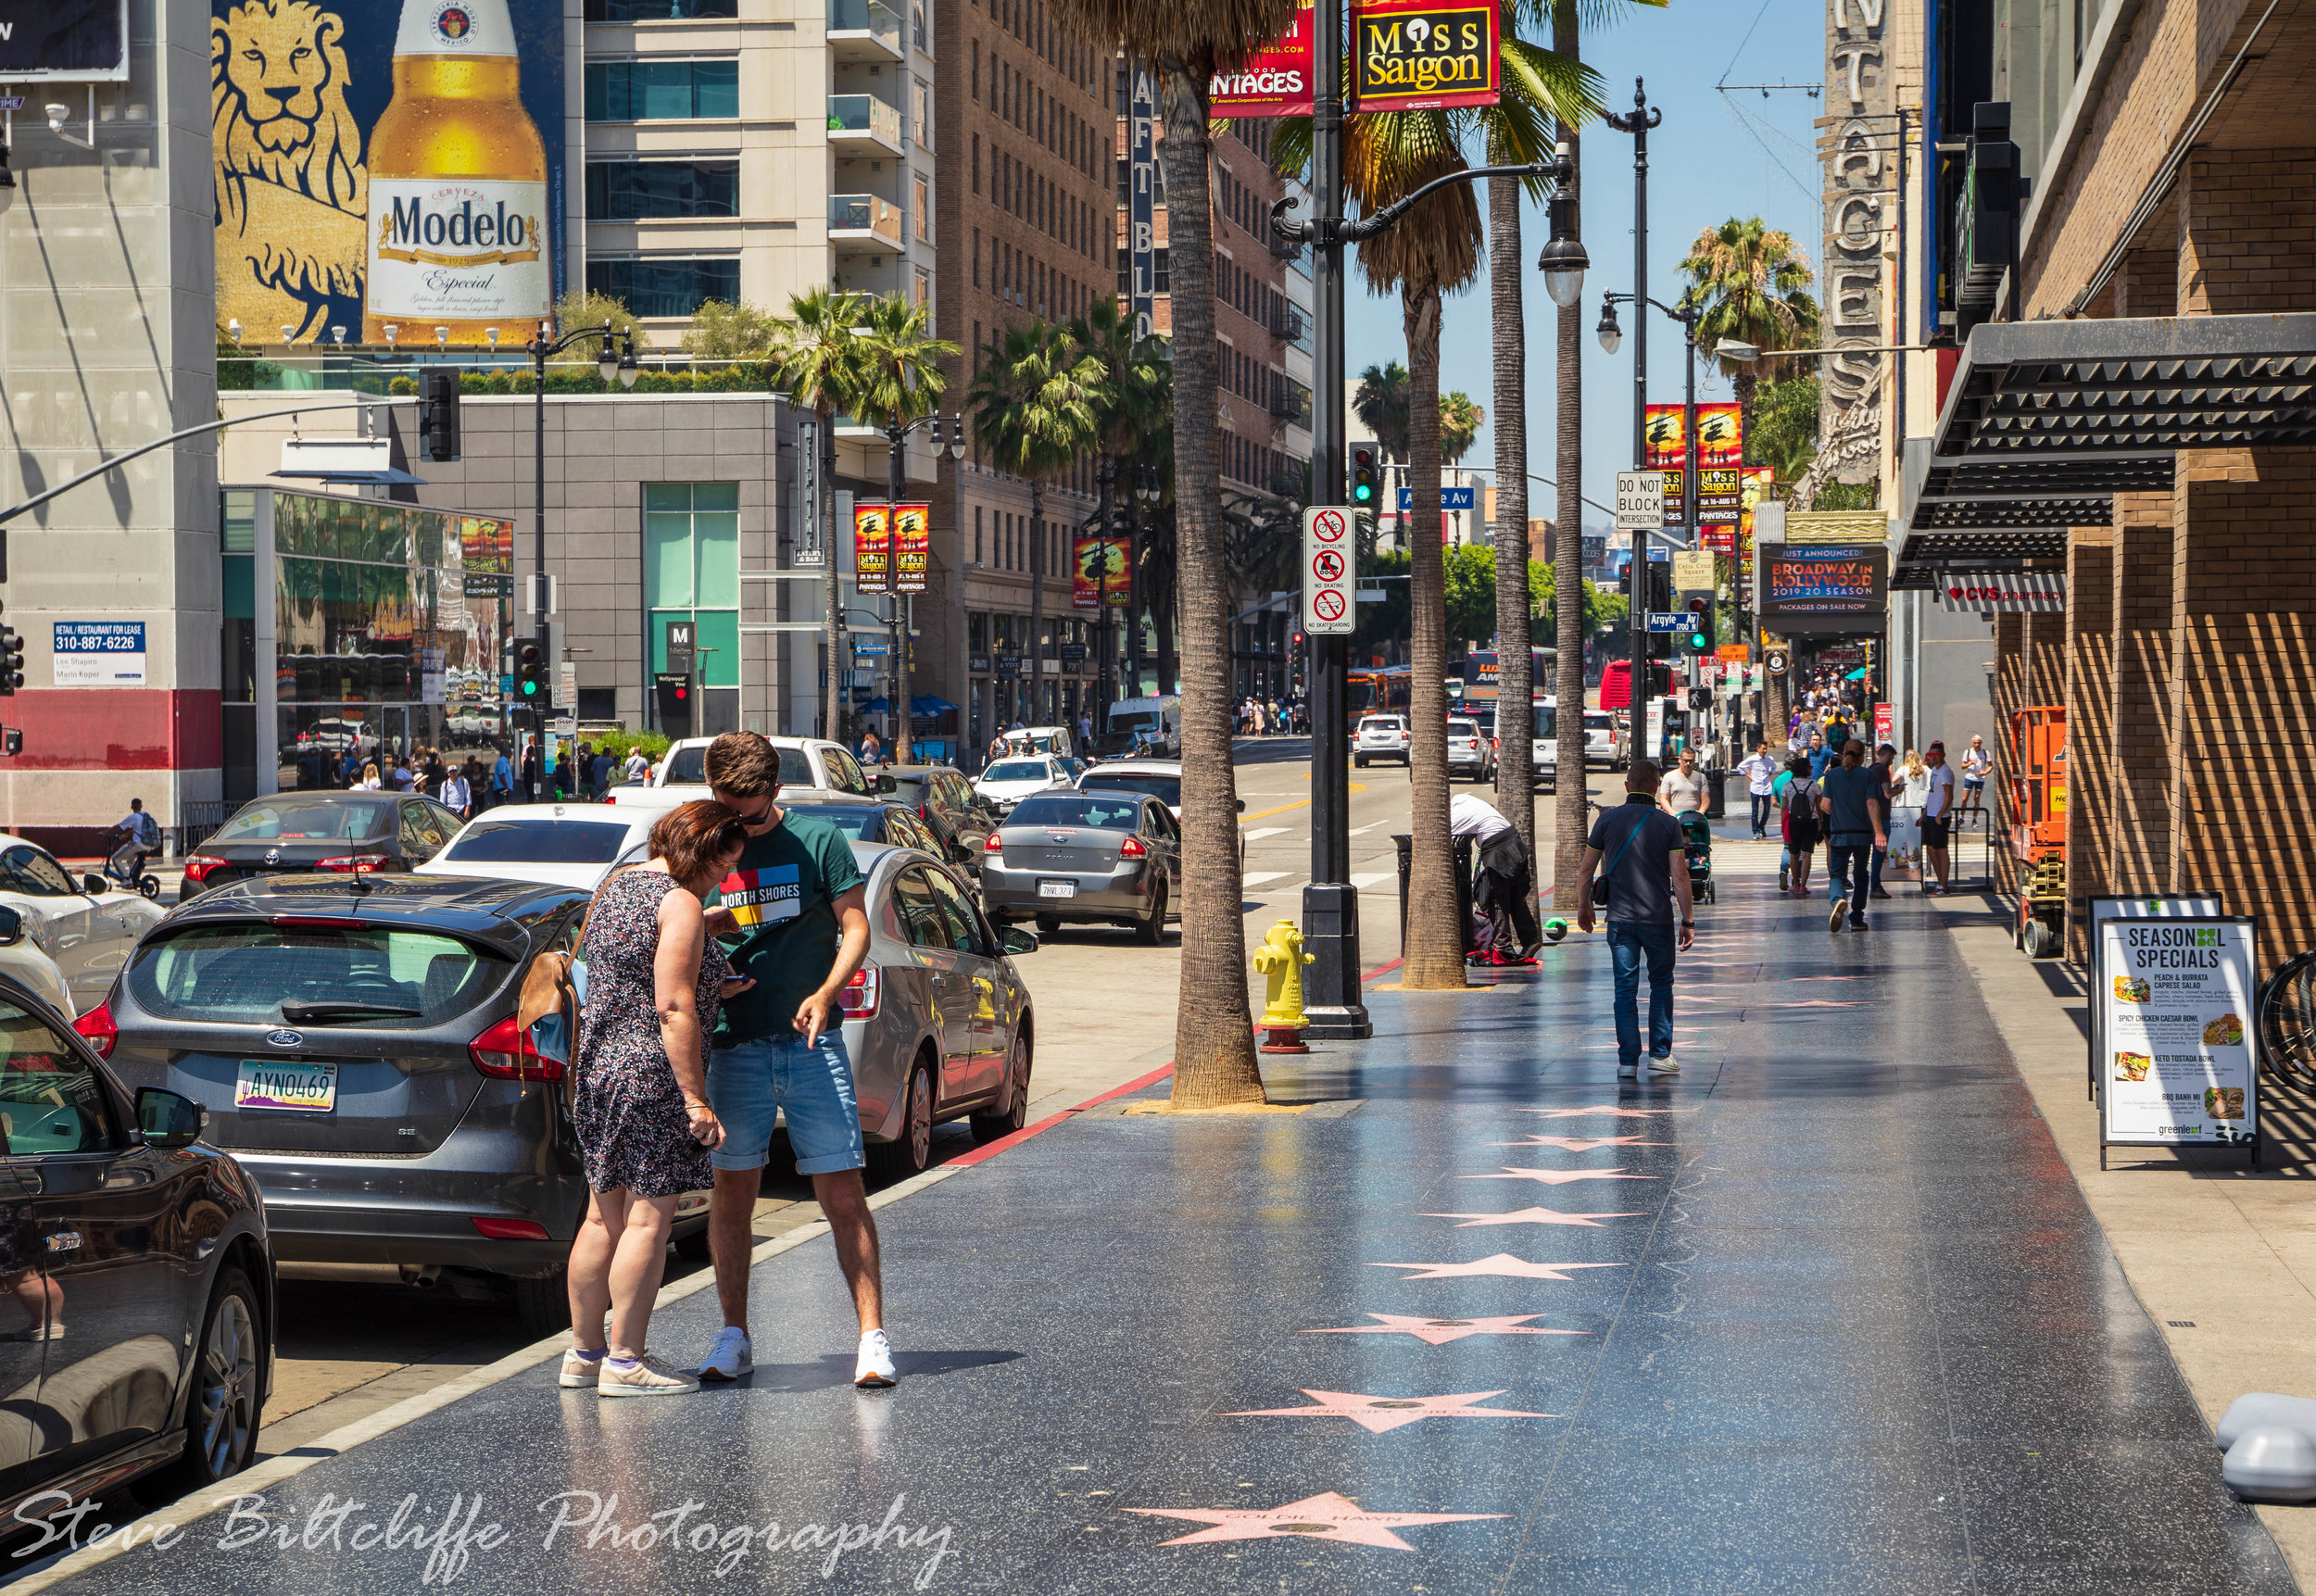 Star spotting on the Hollywood walk of fame